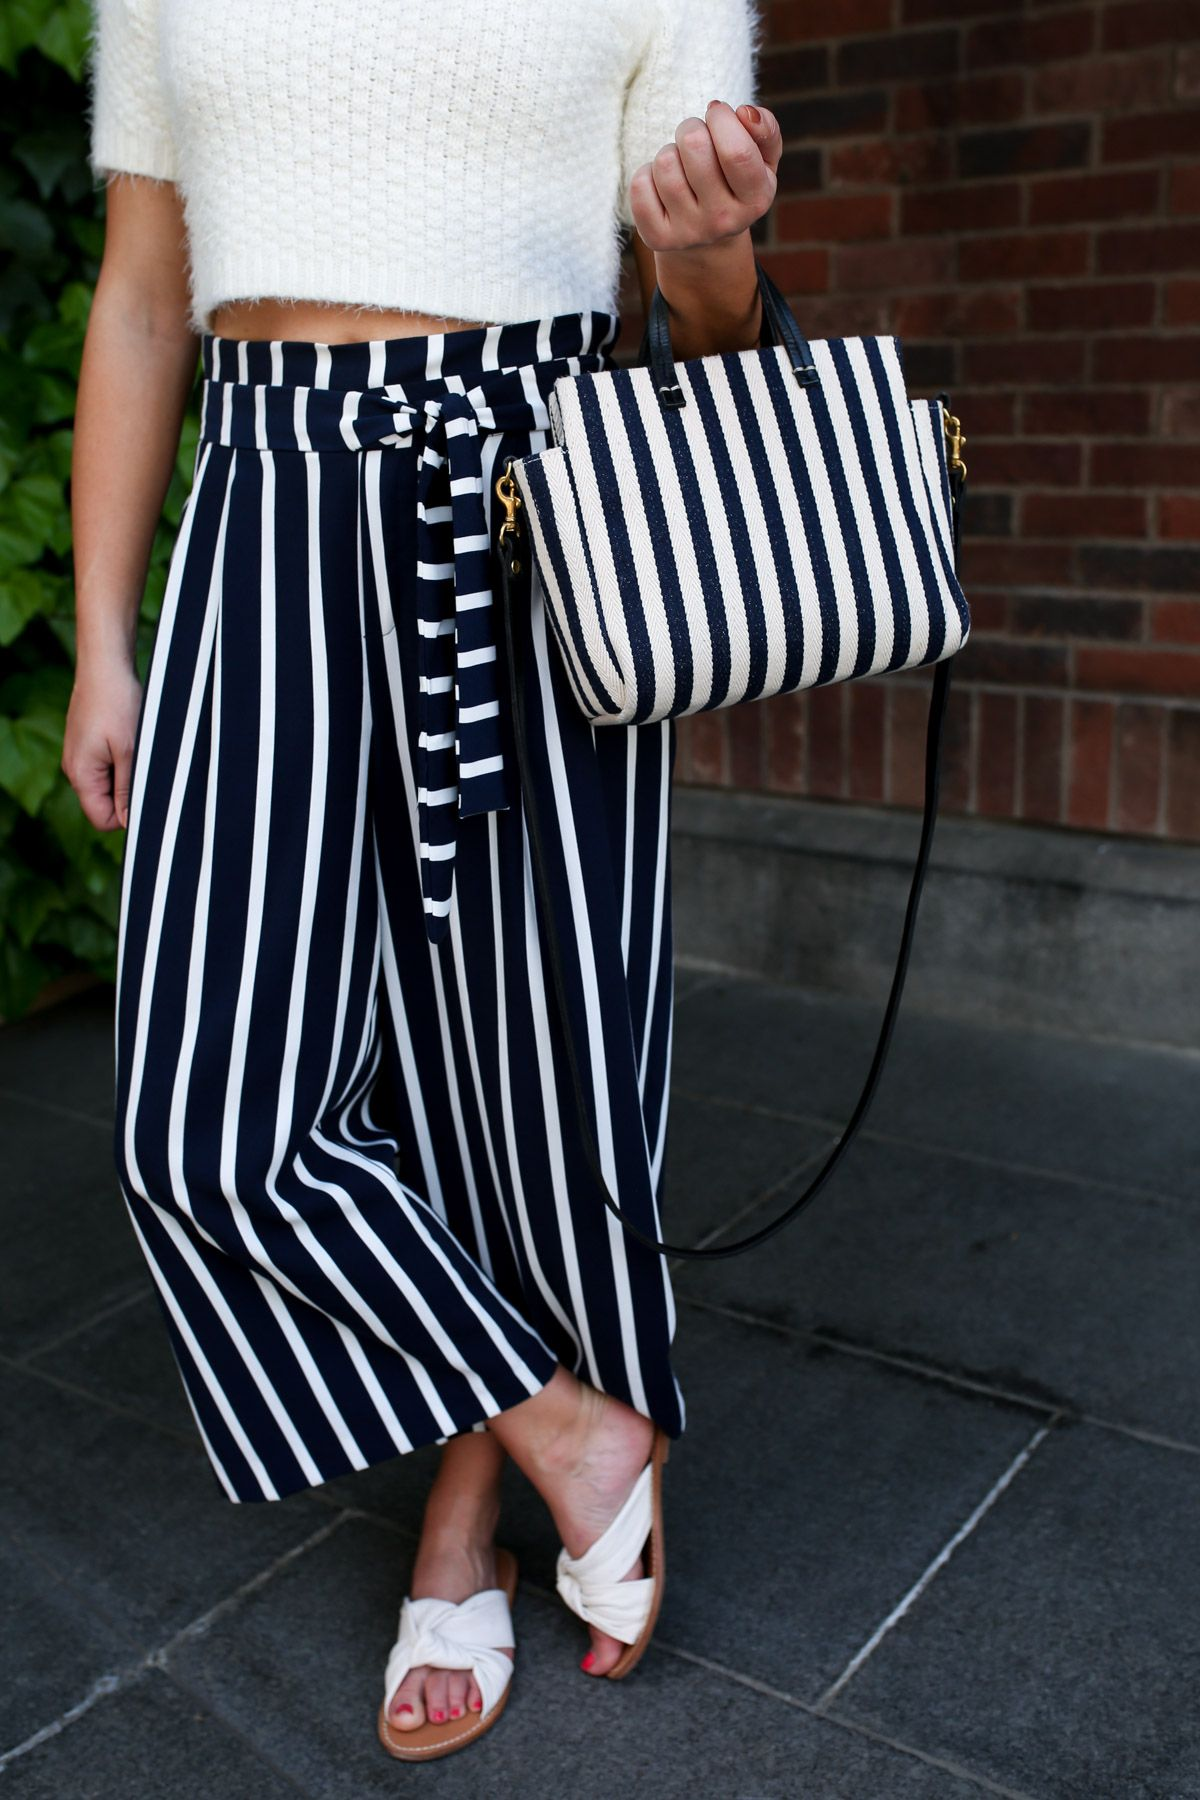 aebcfda128 Fashion blogger Jessica Sturdy styling a pair of Zara high-waisted striped  wide-leg pants with a pair of Soludos knotted slide sandals in Tokyo, Japan.